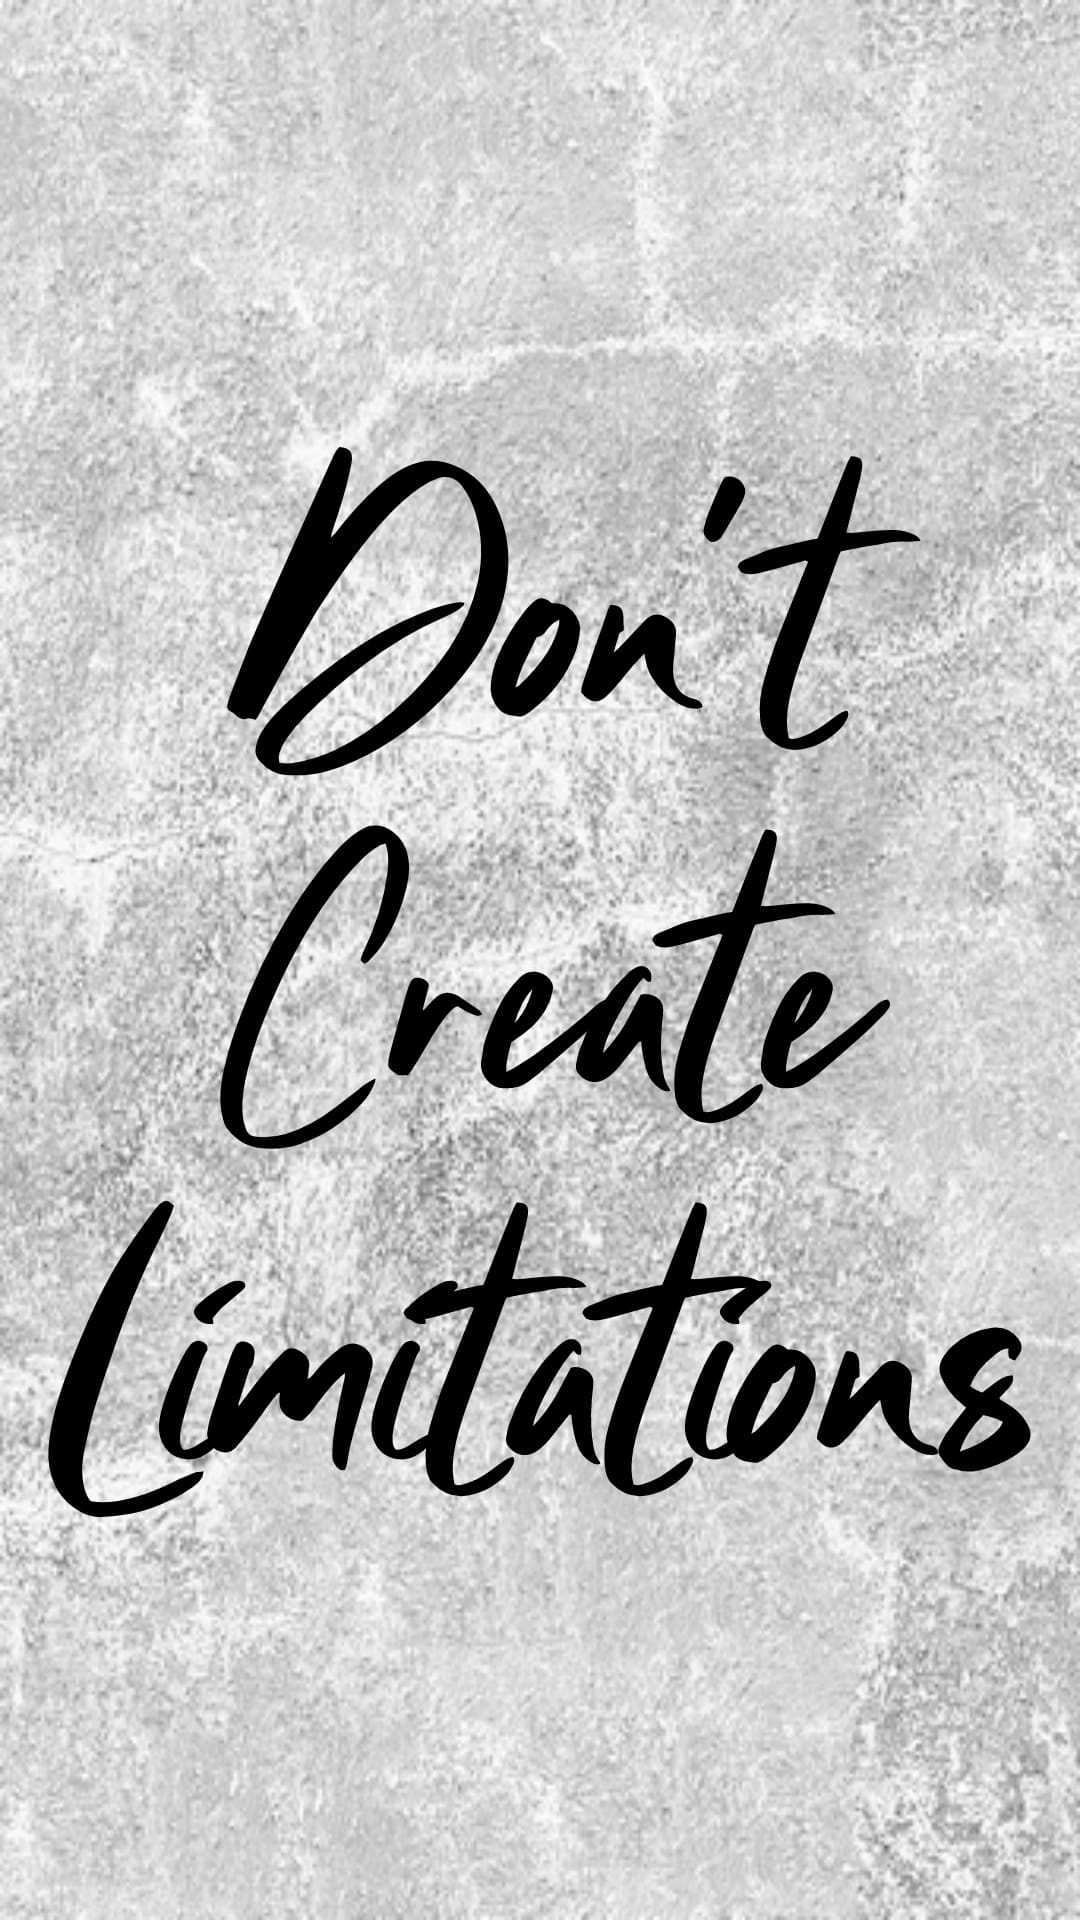 phone wallpaper, phone background, quotes to live by, free phone wallpapers, free iPhone wallpaper, free phone backgrounds, inspirational quotes, phone wallpapers, pretty phone wallpapers